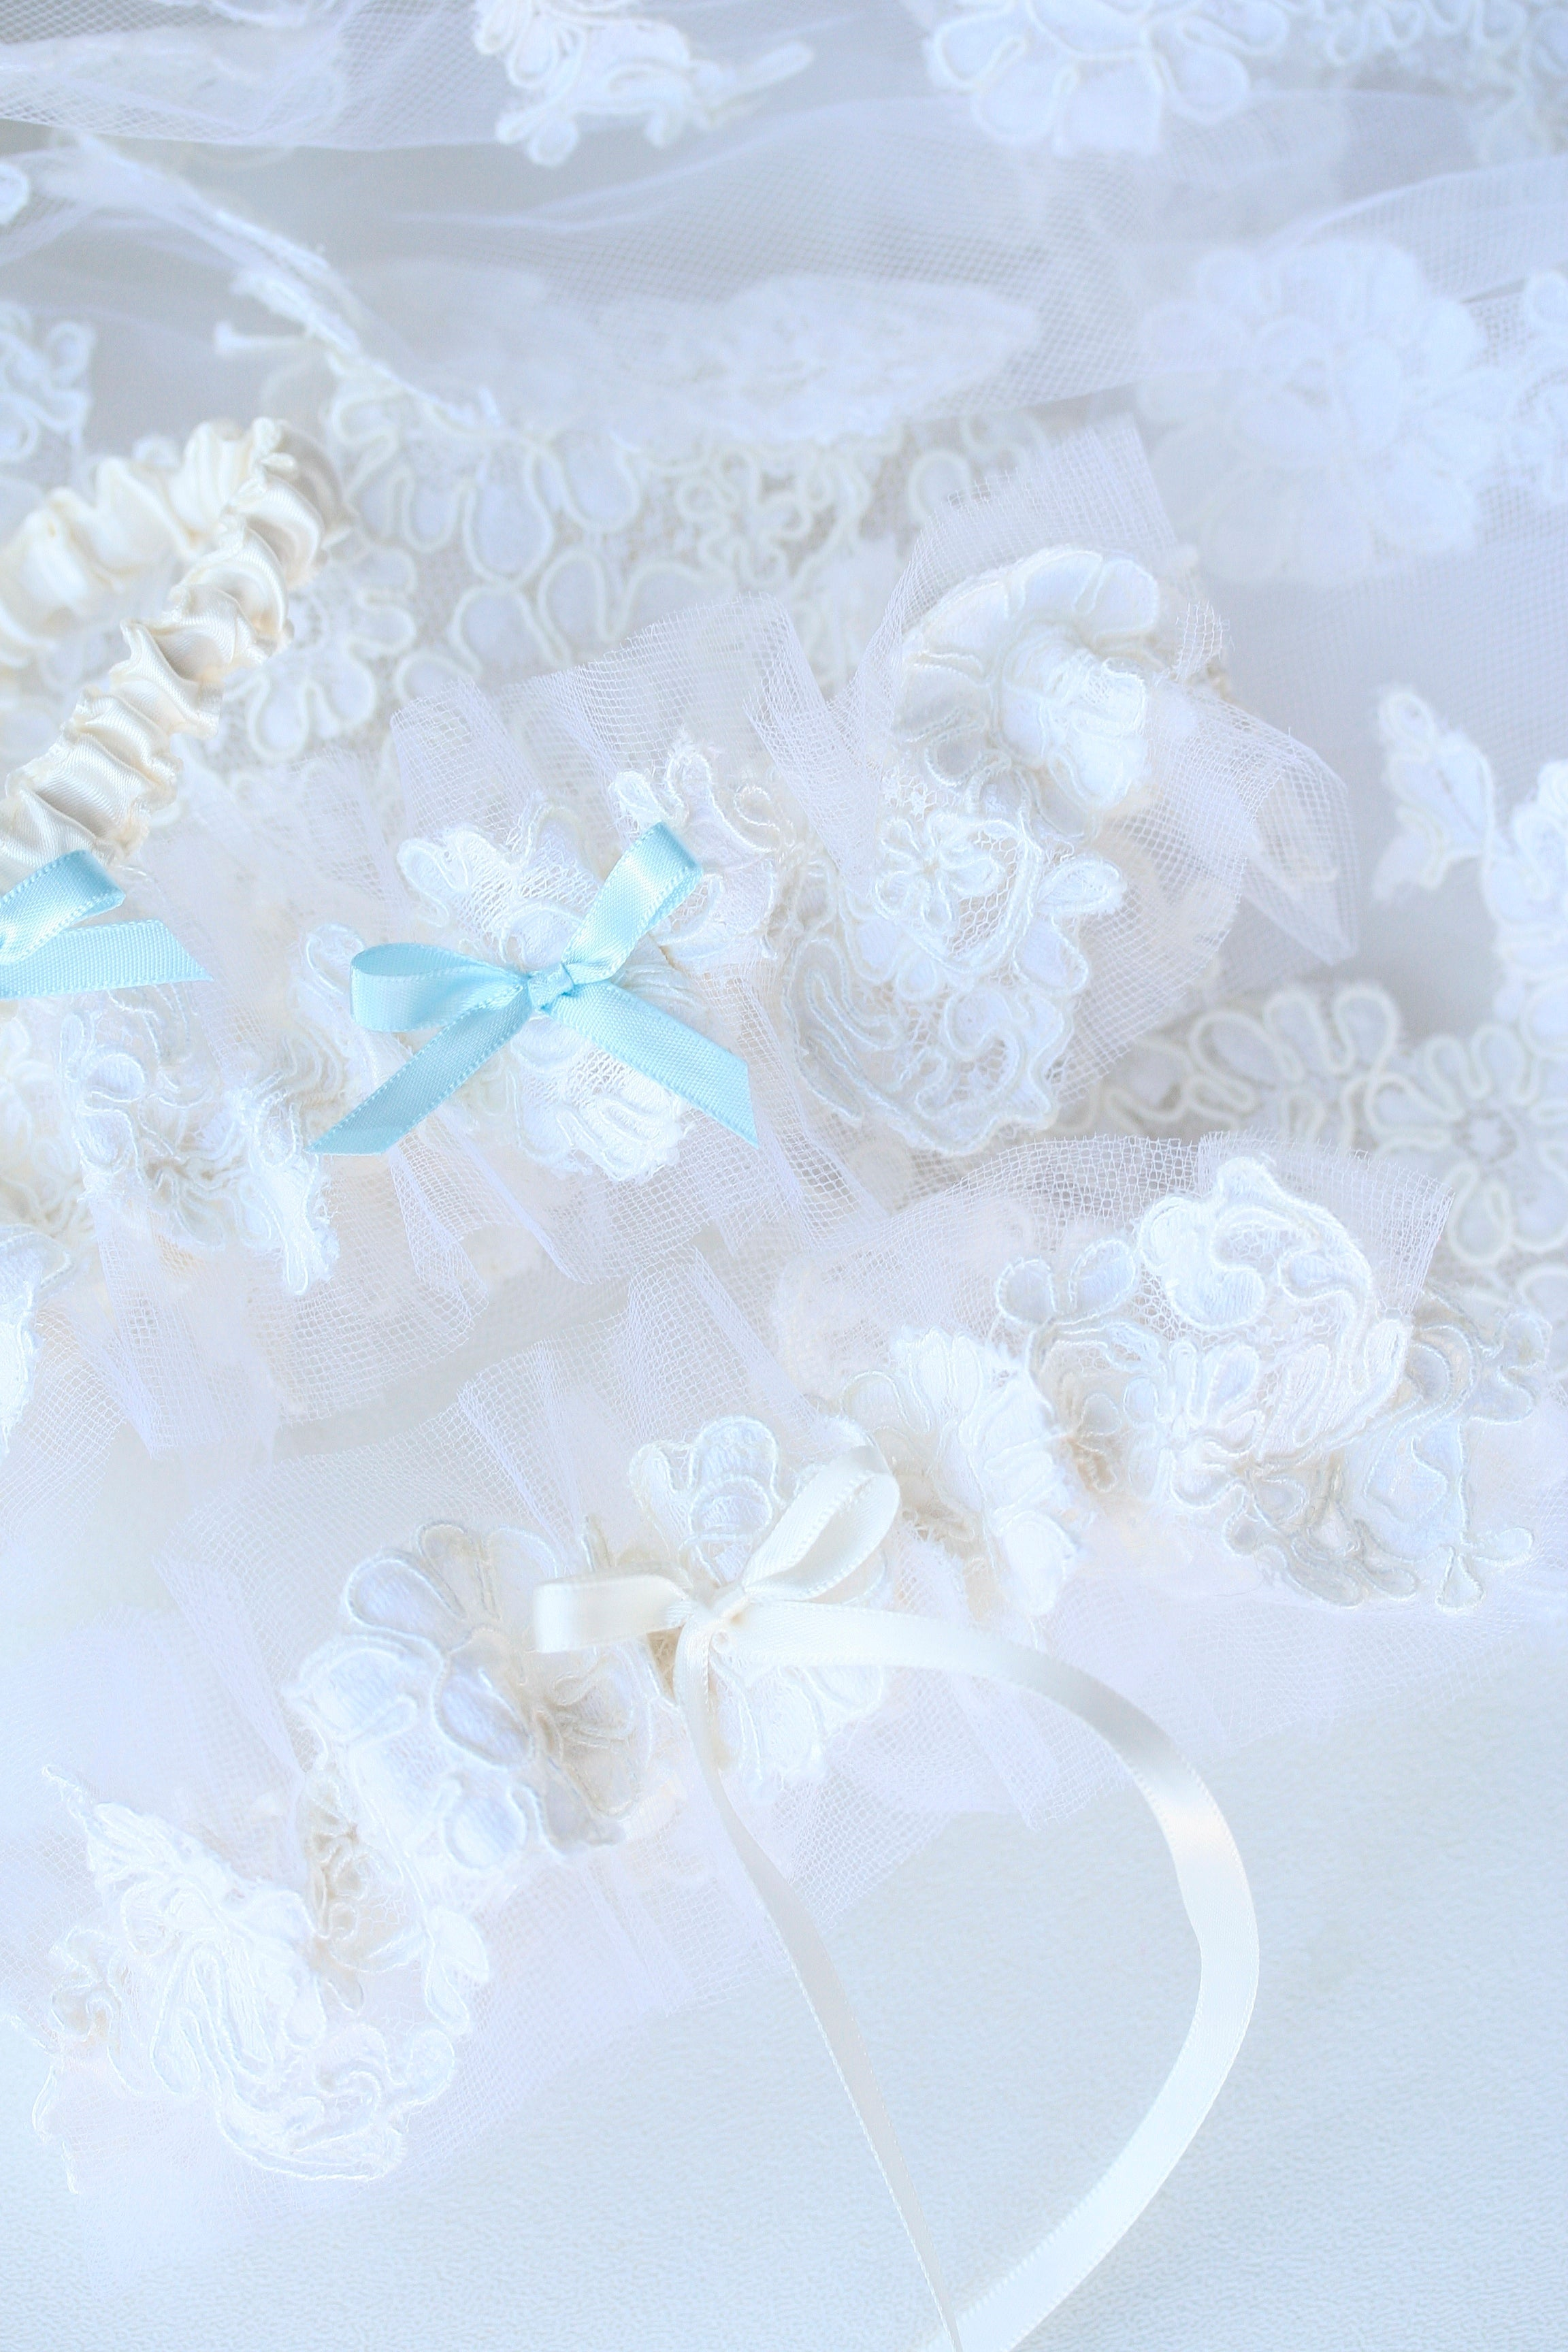 two wedding garters made for two sisters from their mother's wedding veil